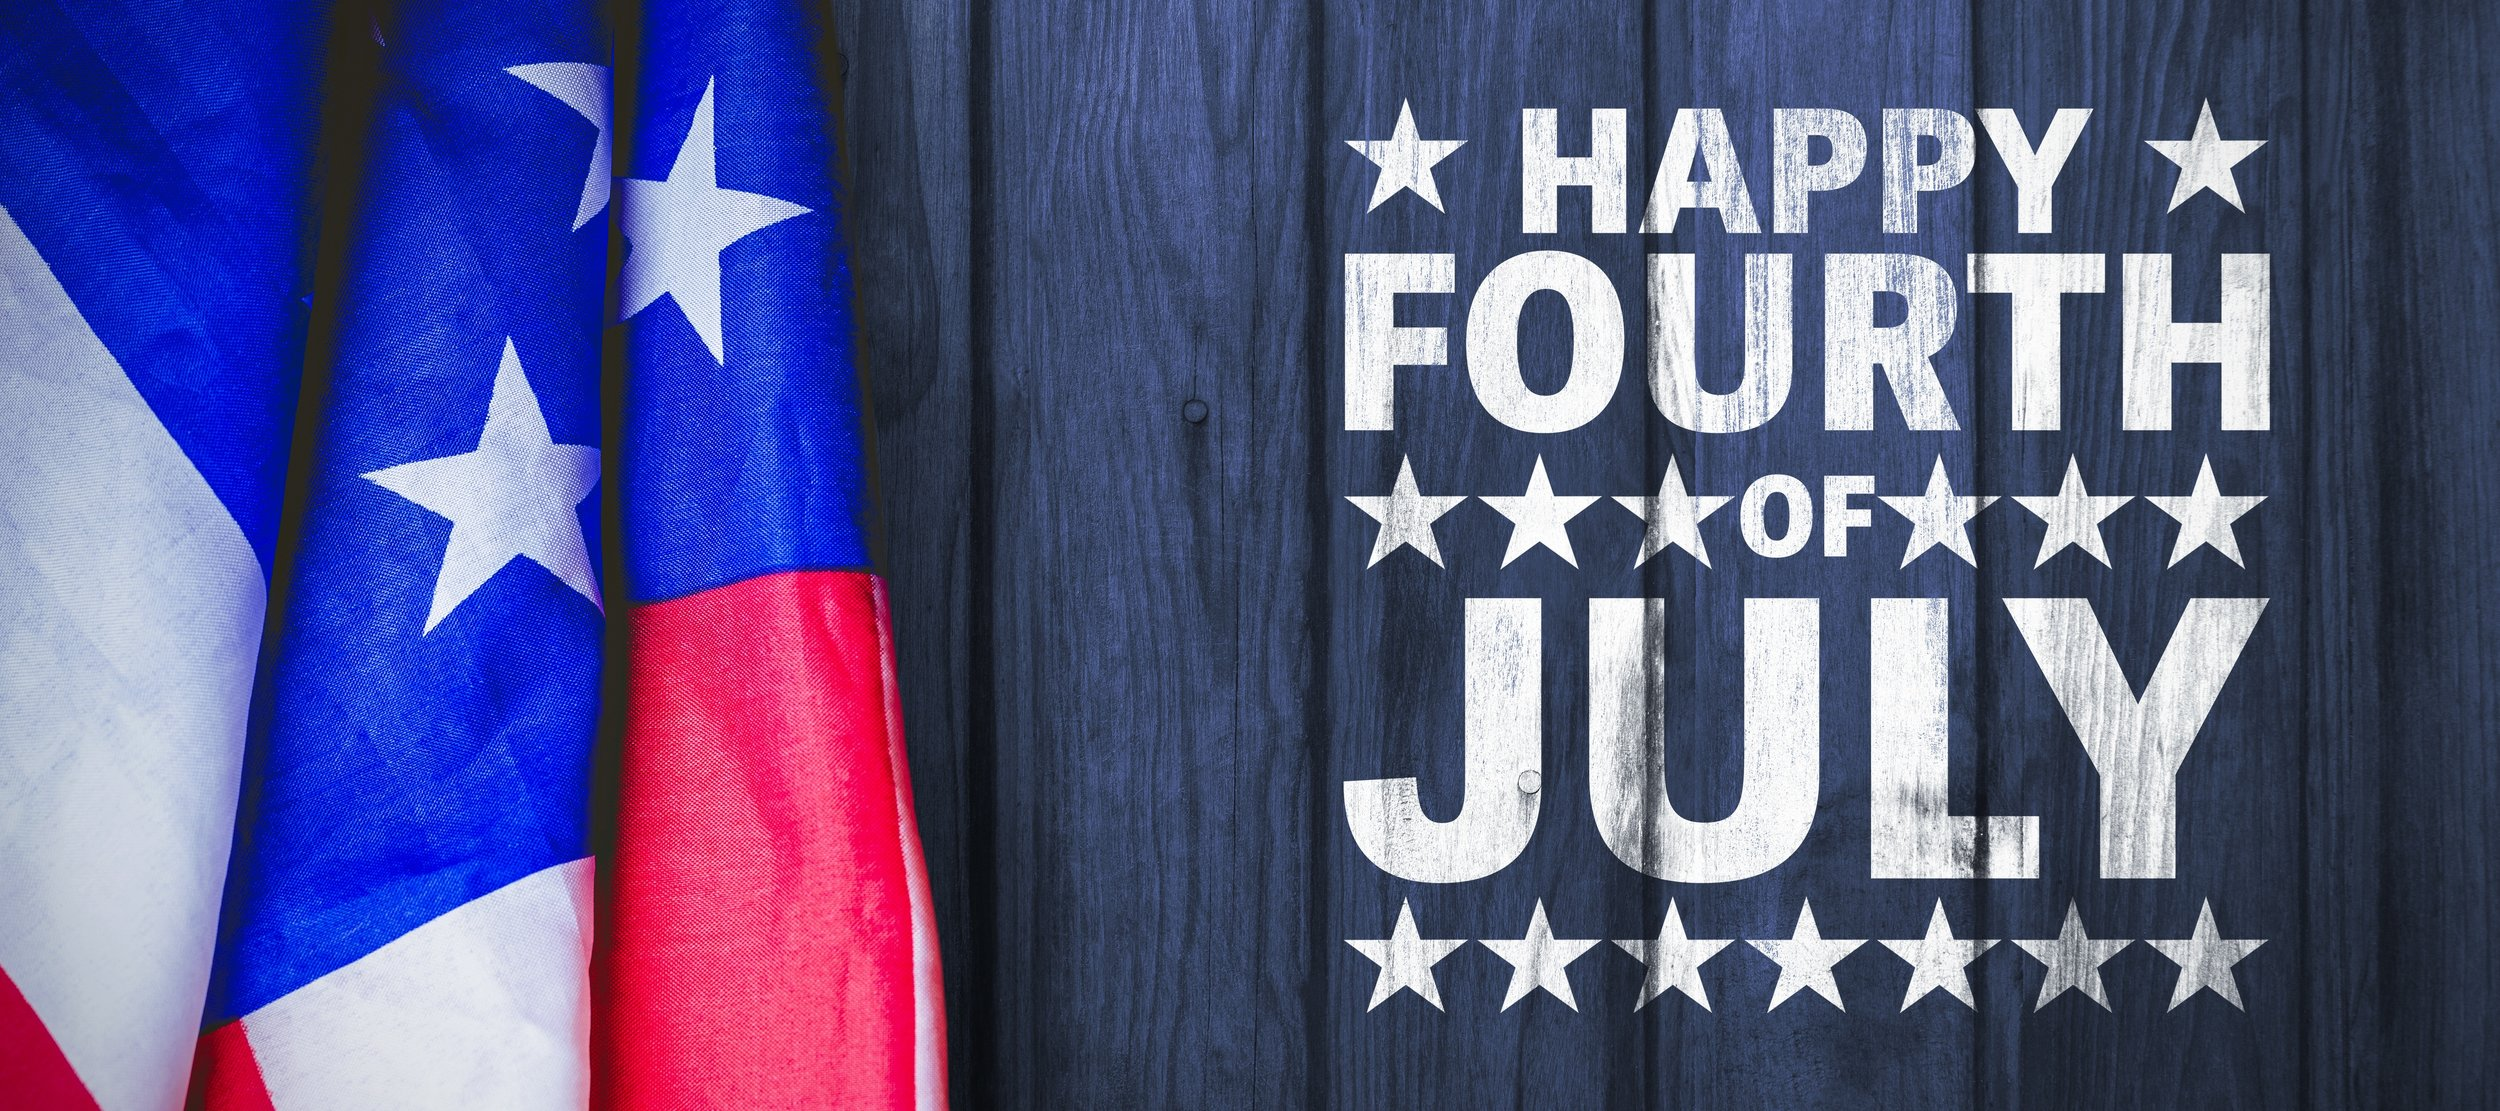 fourth of july banner.jpeg